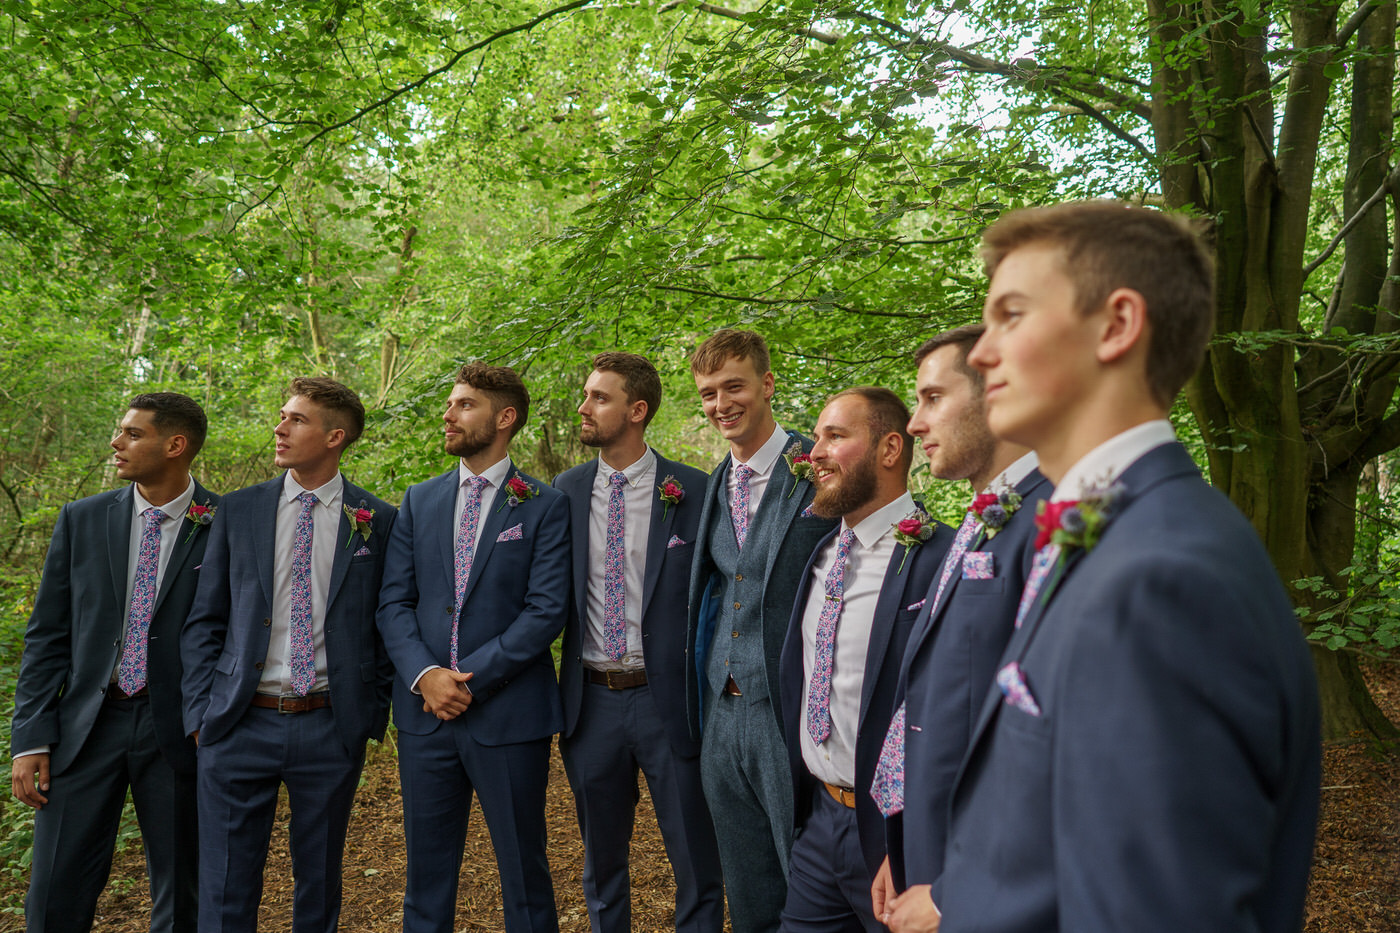 wedding photographer in shropshire captures groomsmen at wedding